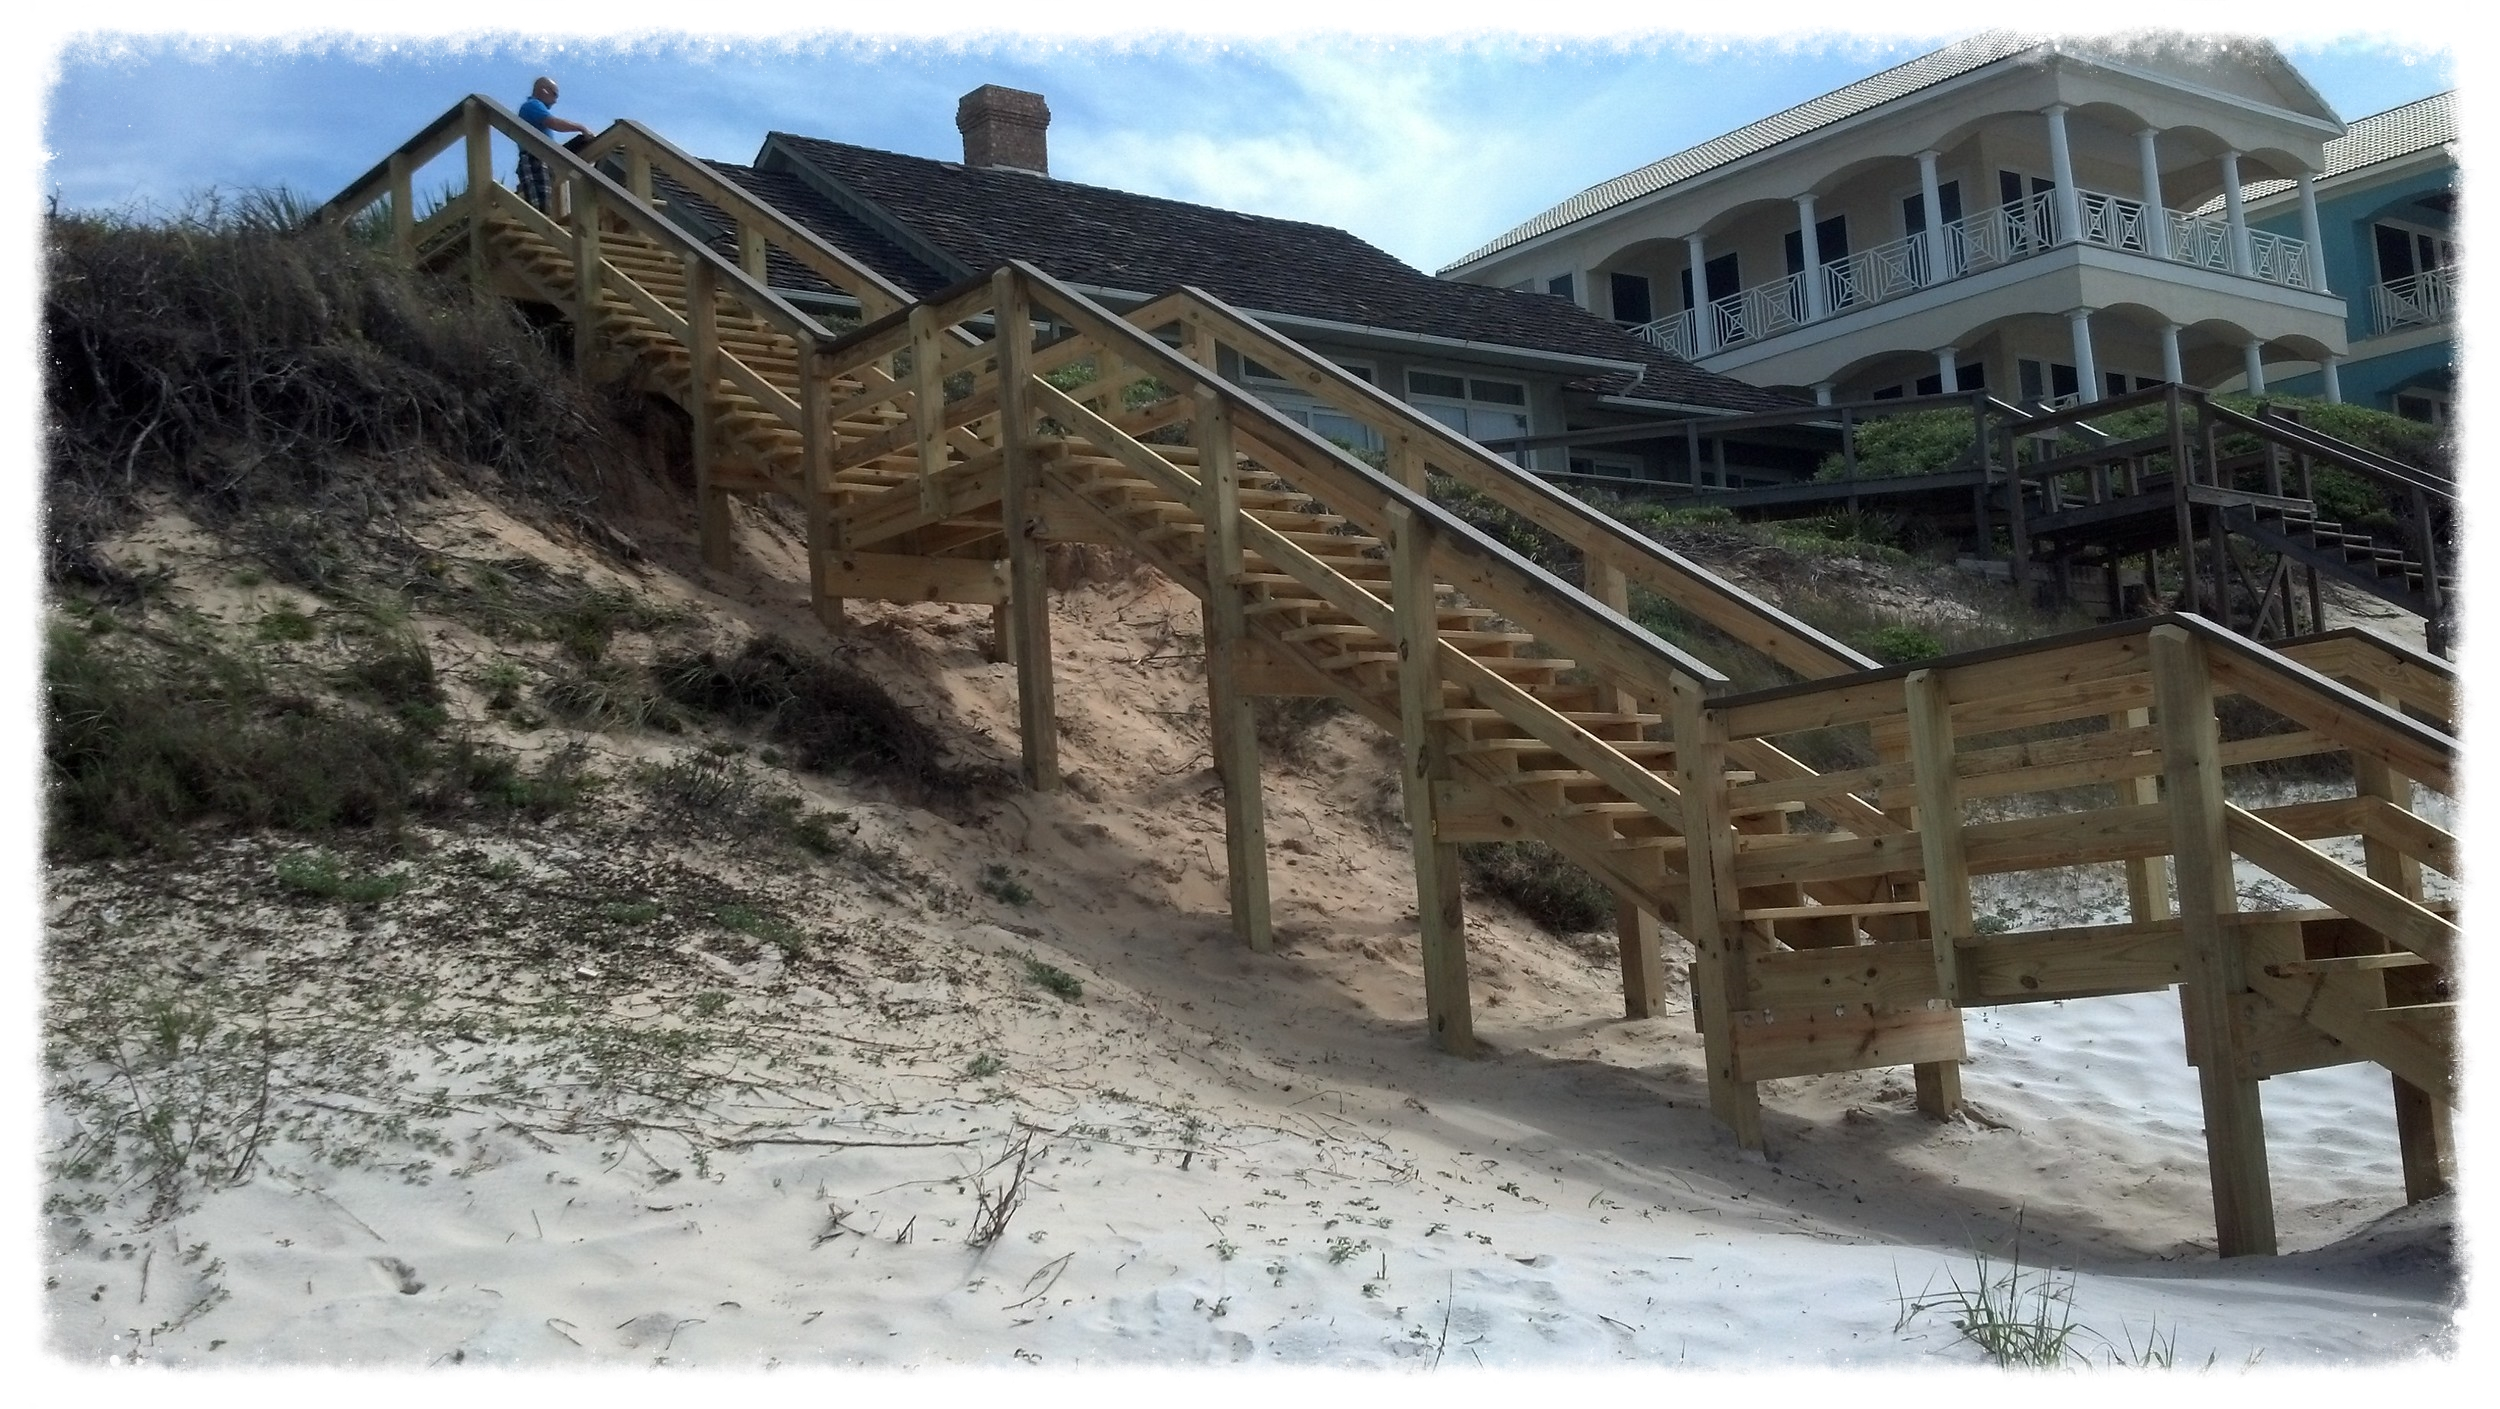 Boardwalk with stairs